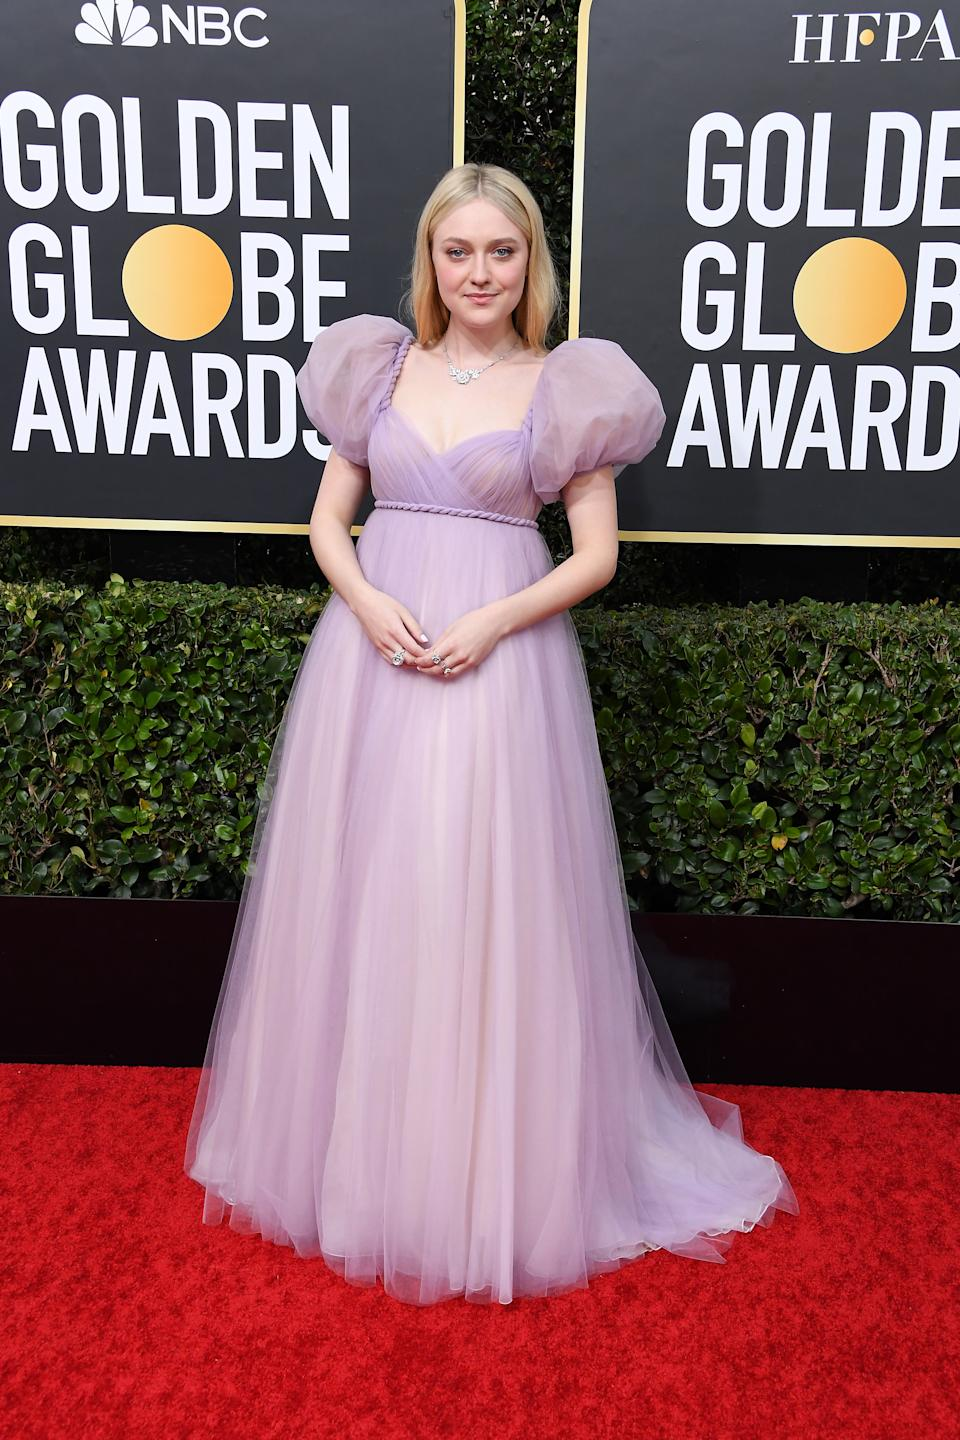 Fanning arrived looking regal in a lavender gown by Dior. (Photo by Steve Granitz/WireImage)